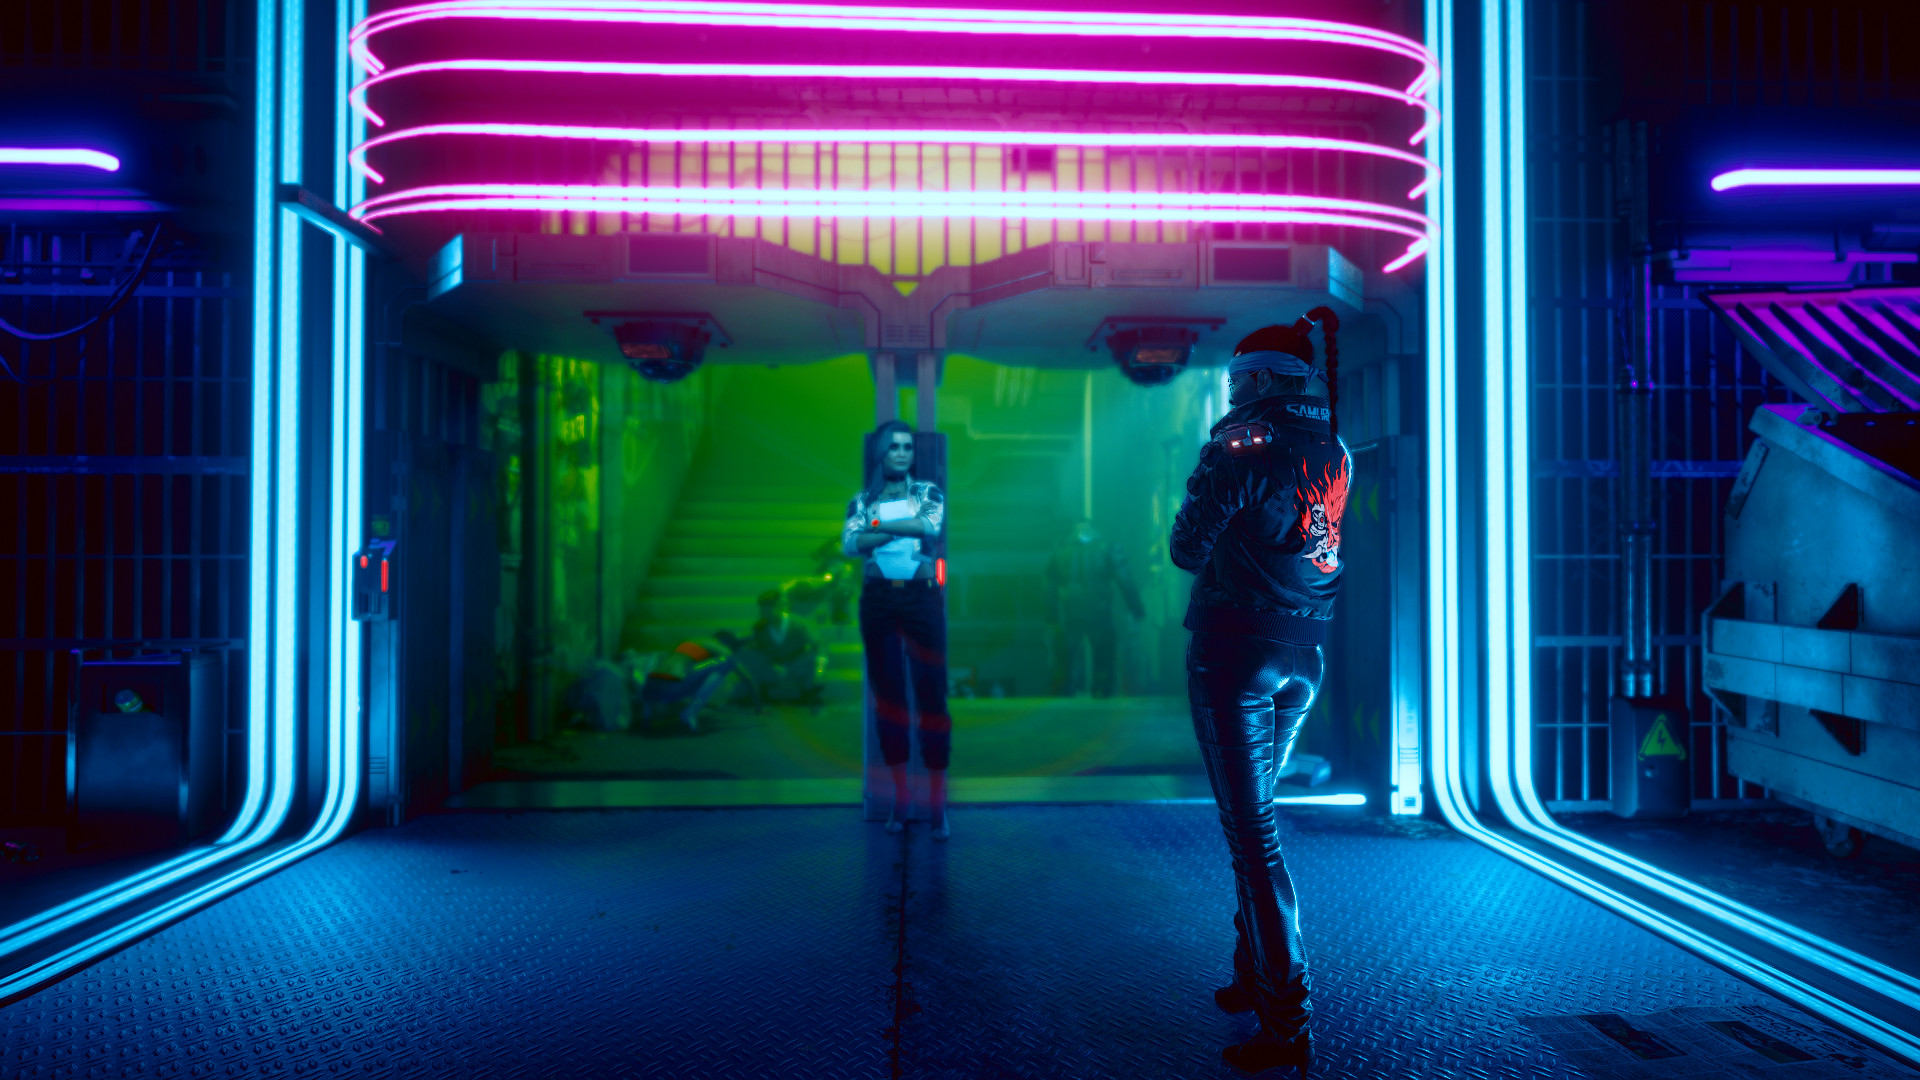 General 1920x1080 Cyberpunk 2077 video games cyberpunk cyberpunk v Female V Rogue Amendiares